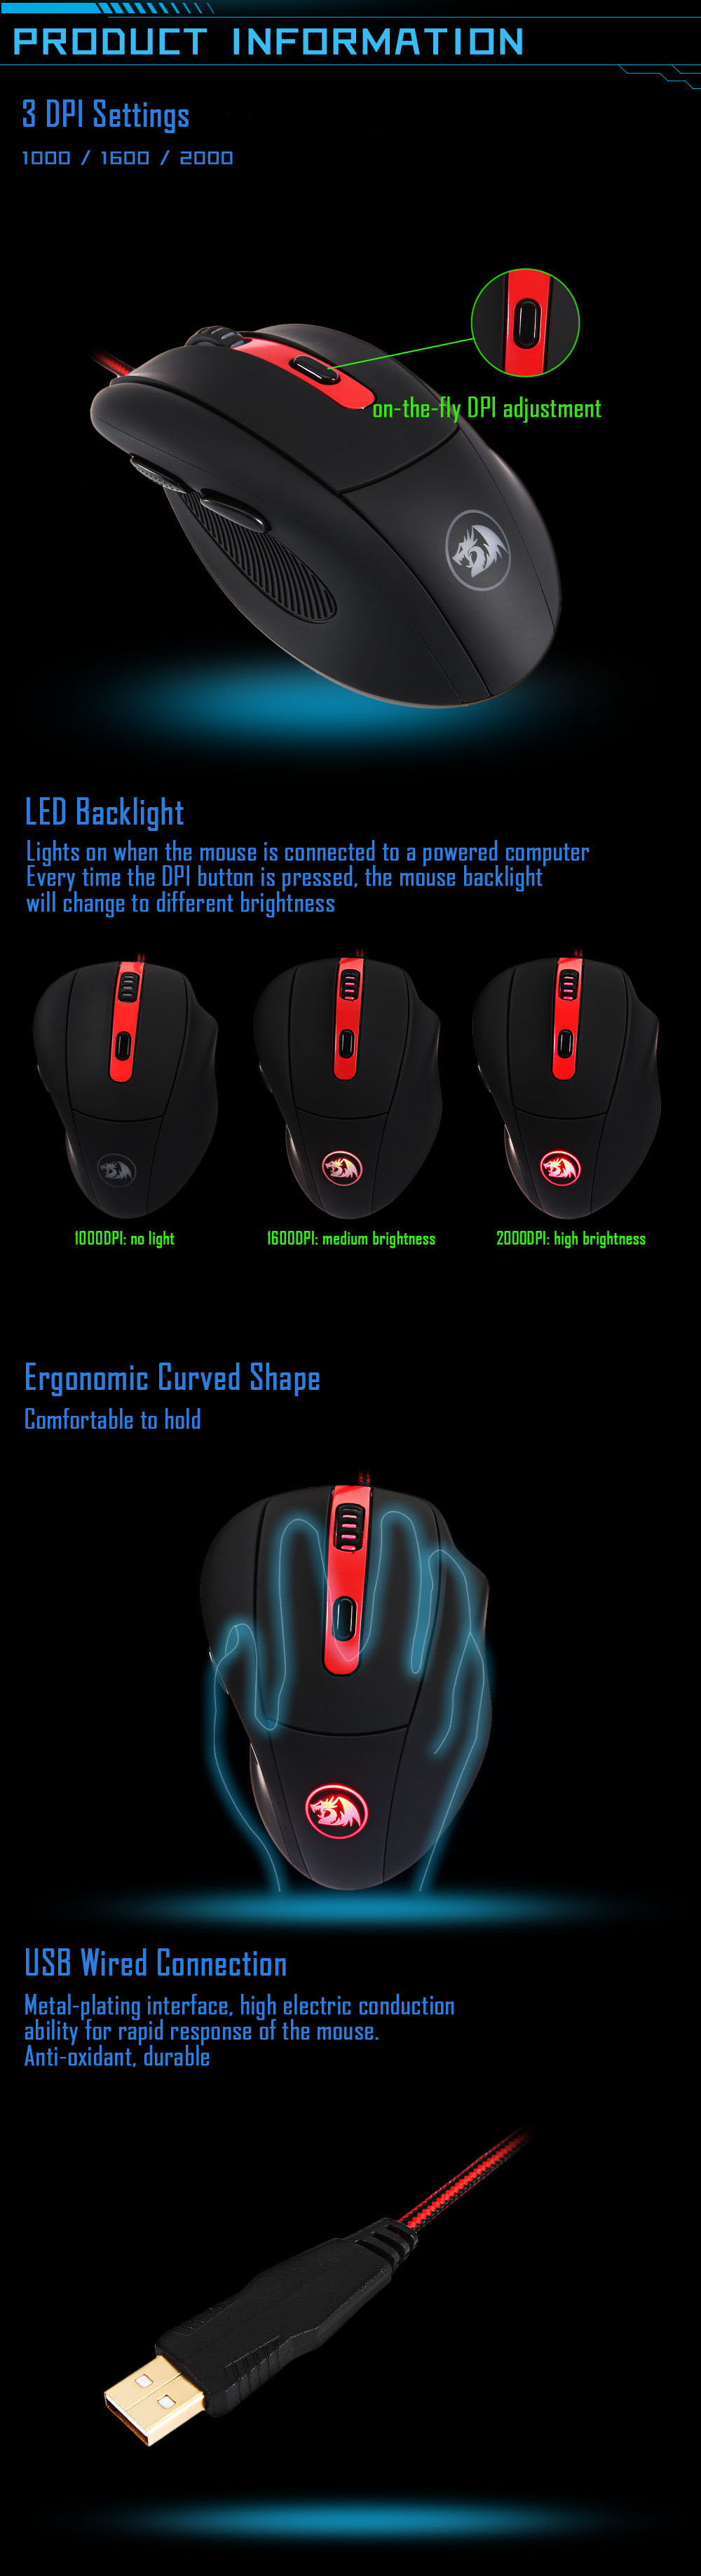 Redragon M605 2000DPI USB Wired Optical Gaming Mouse